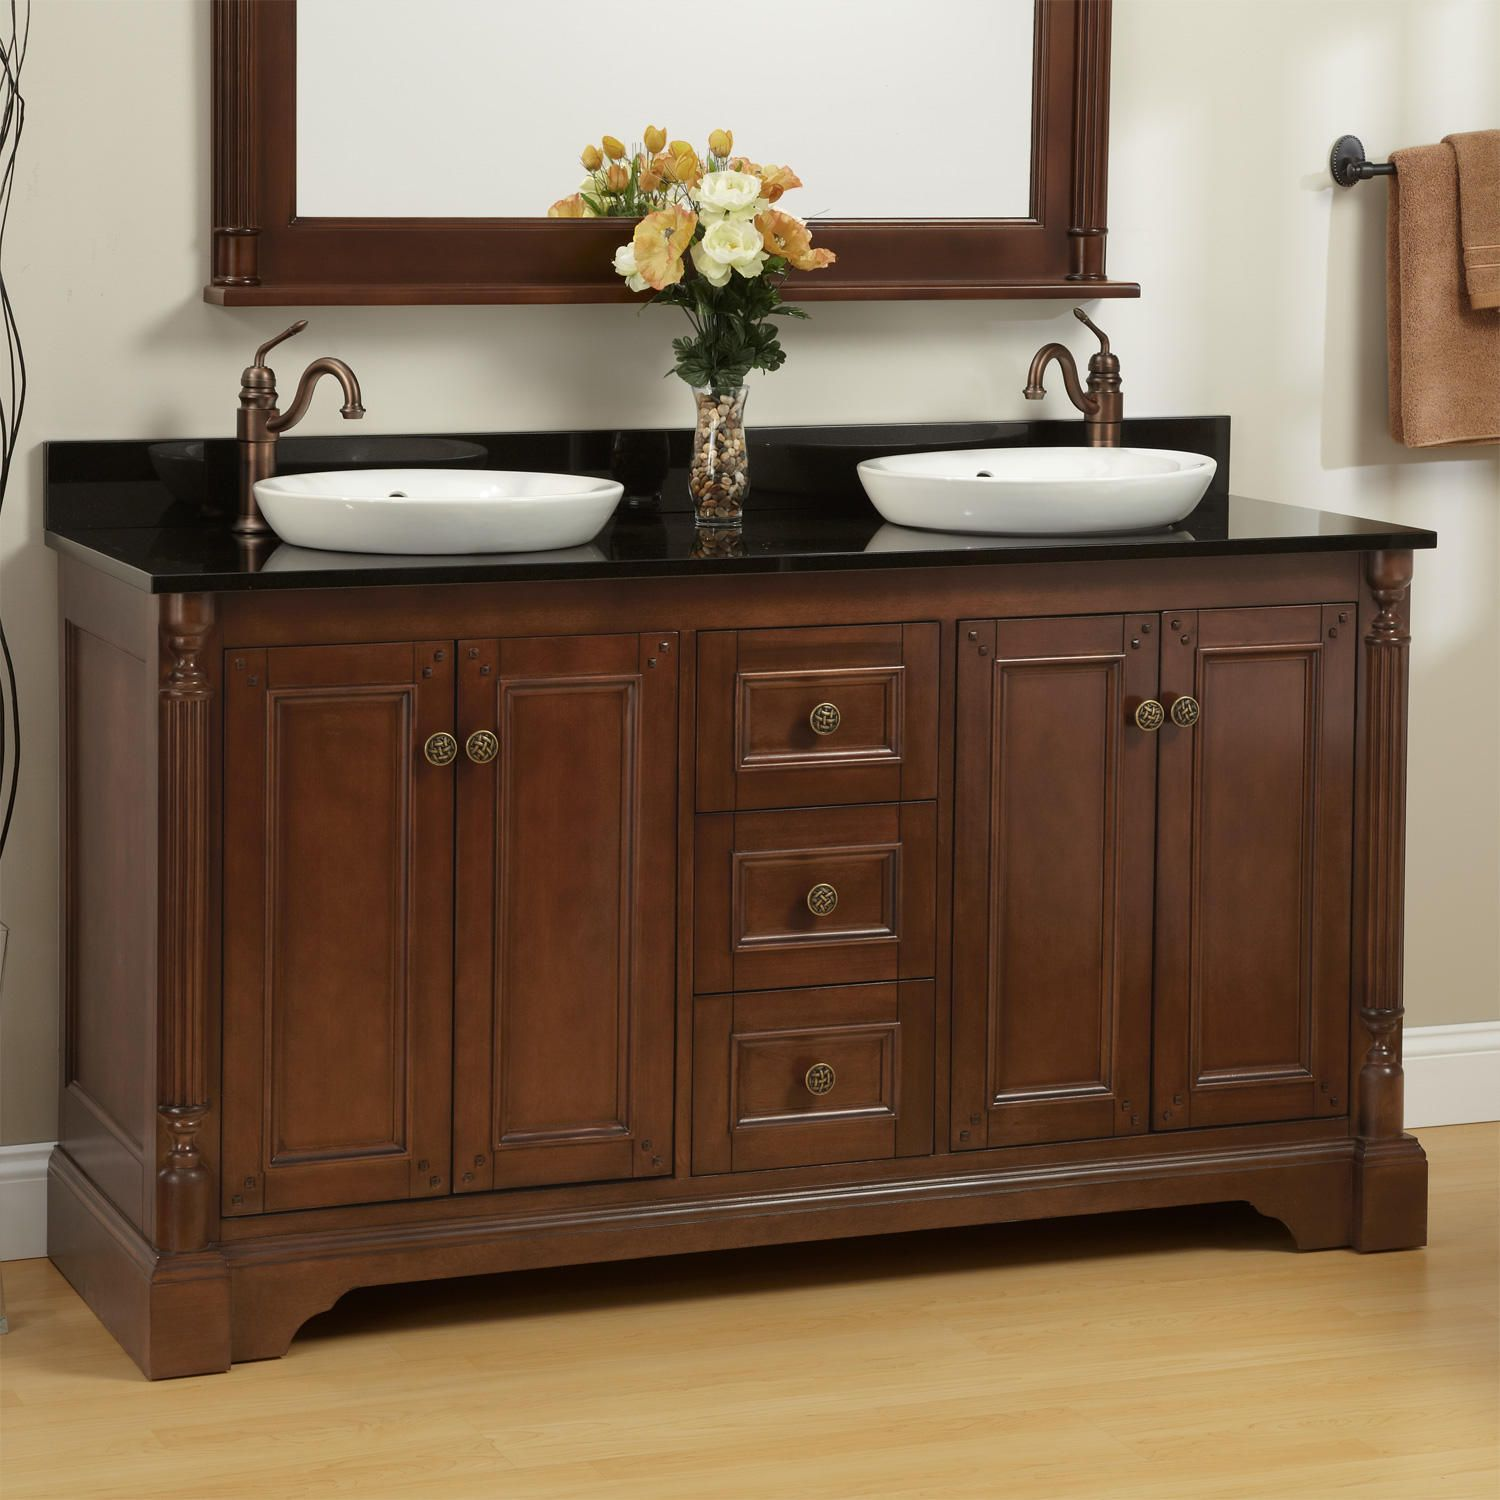 "60"" Trevett Double Vanity for Semi-Recessed Sinks - Walnut"